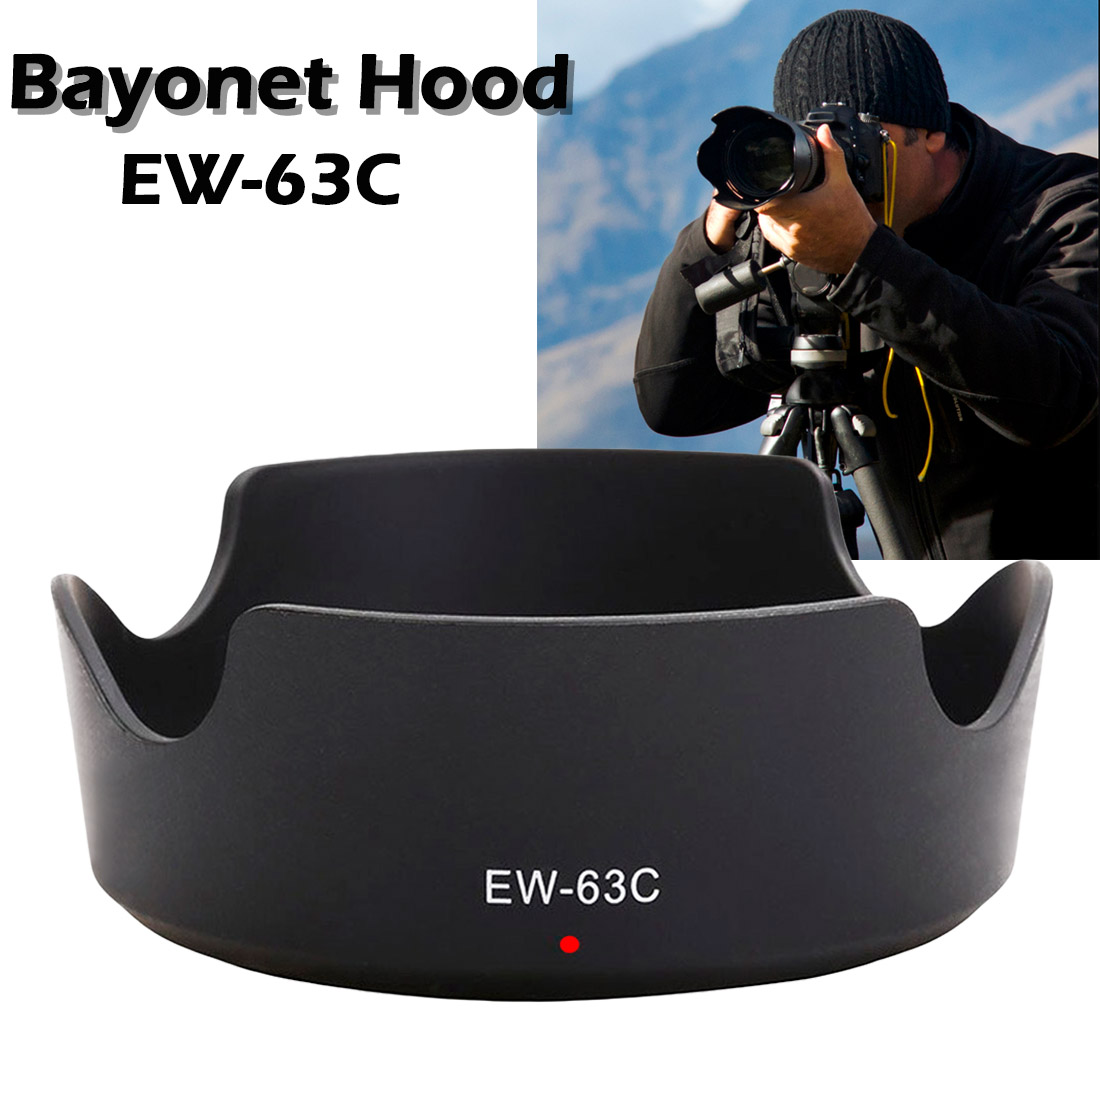 ABS Lens Hood <font><b>EW</b></font>-<font><b>63C</b></font> EW63C for Canon EF-S 18-55mm f/3.5-5.6 IS STM 58mm camera lens hood lens protetor <font><b>ew</b></font> <font><b>63c</b></font> image